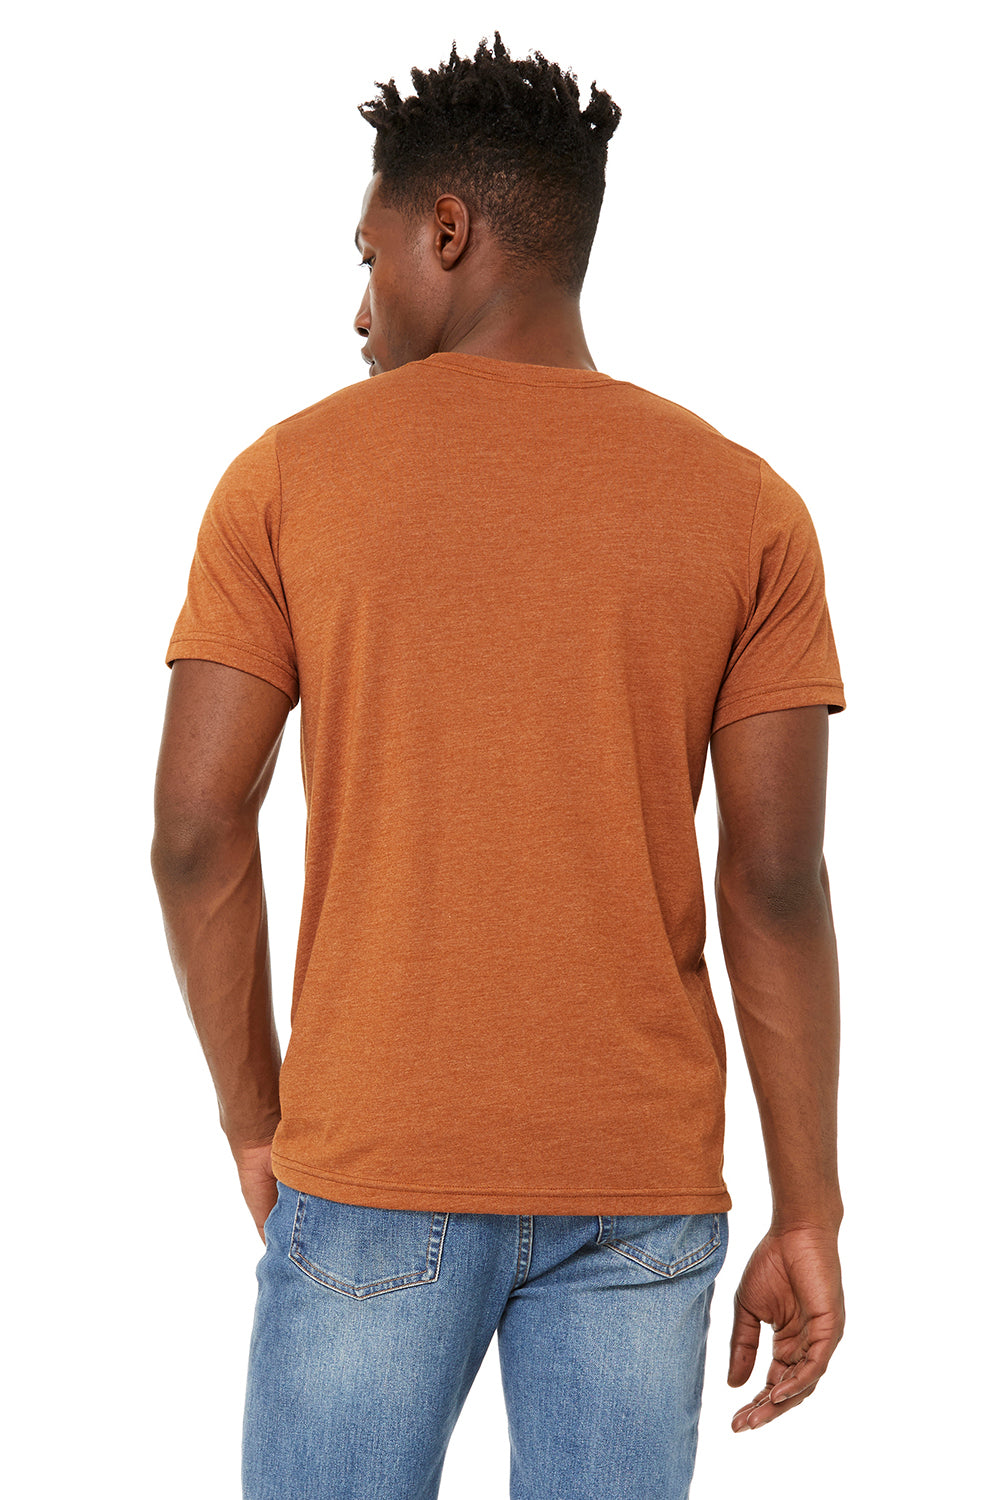 Bella + Canvas BC3301 Jersey Short Sleeve Crewneck T-Shirt Heather Autumn Orange Back